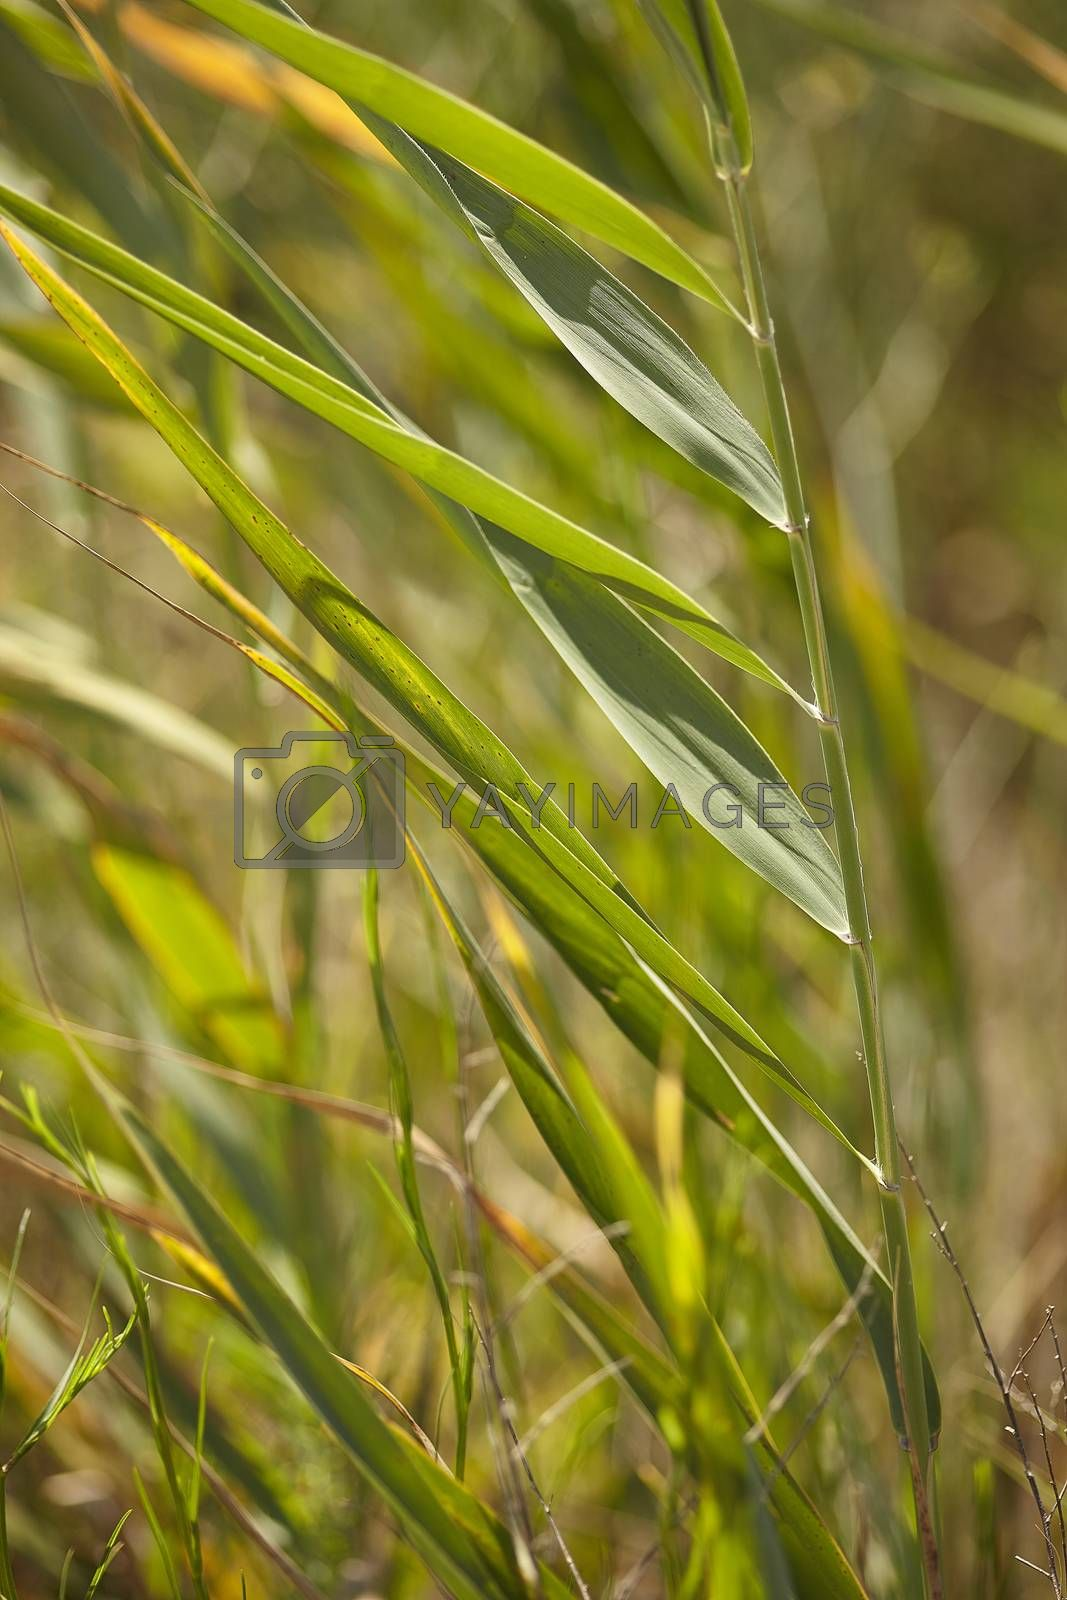 Royalty free image of Blades of grass by pippocarlot